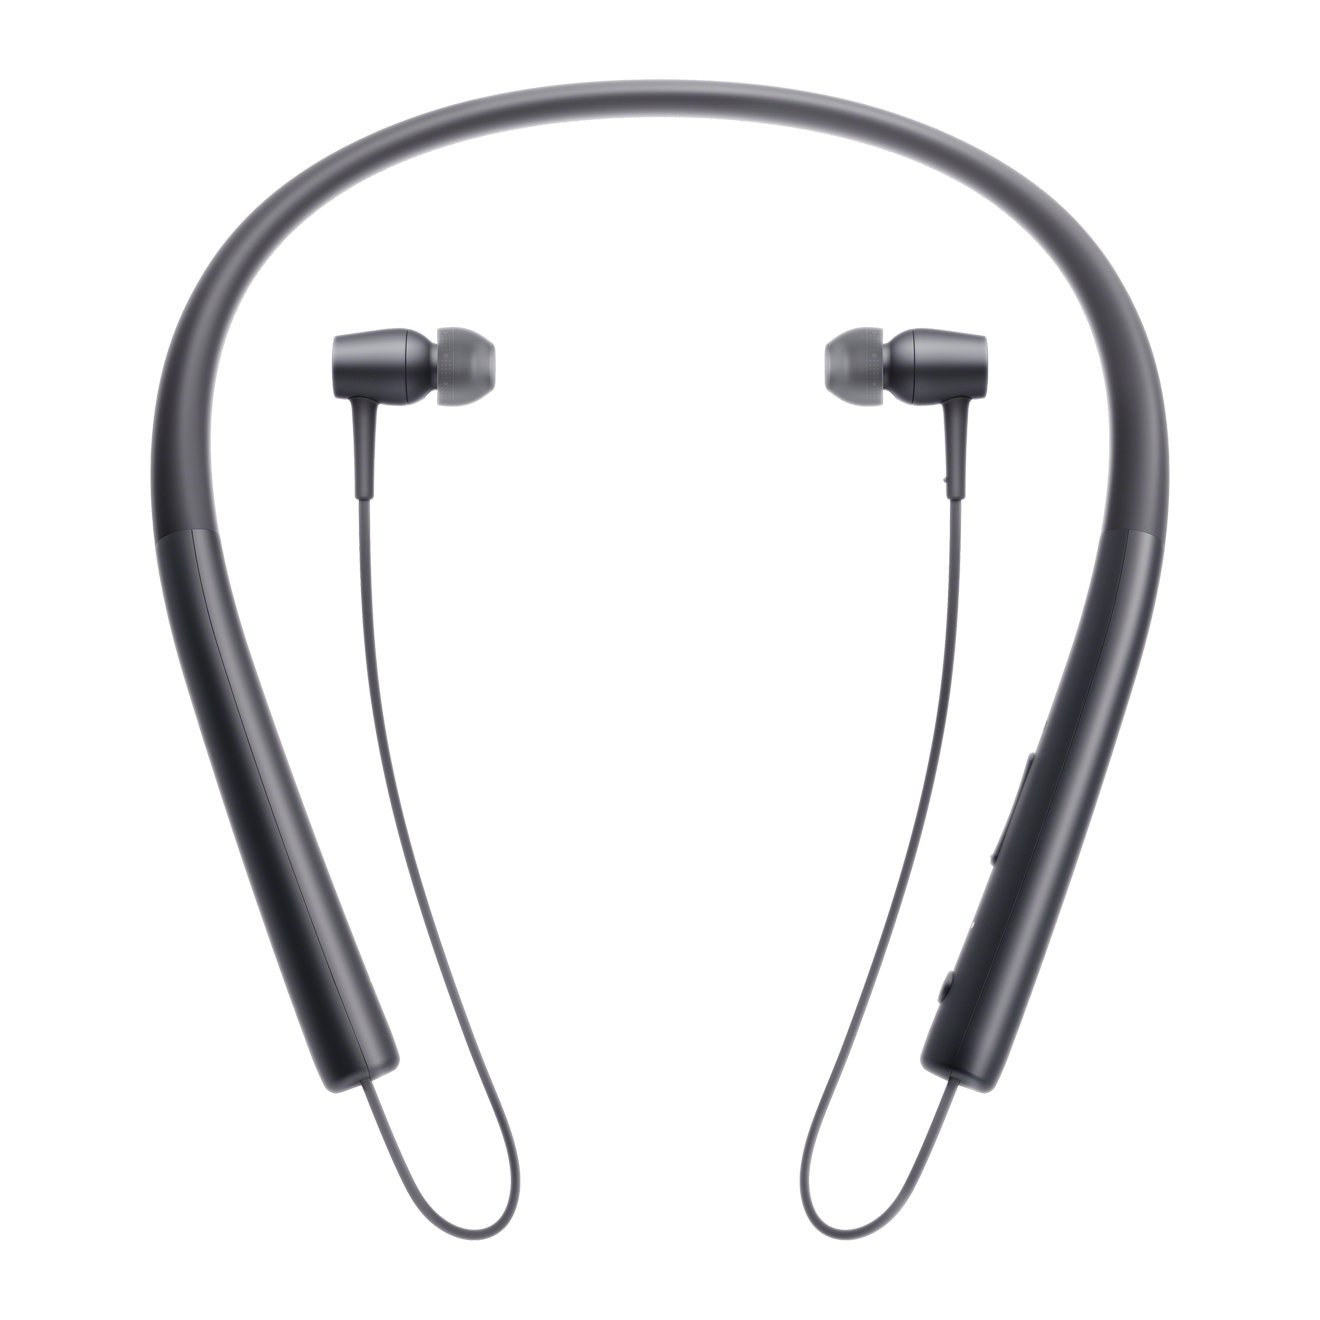 Sony MDREX750BTB - Auriculares in-ear inalámbricos (con audio de alta resolución, Bluetooth con NFC y LDAC), color negro